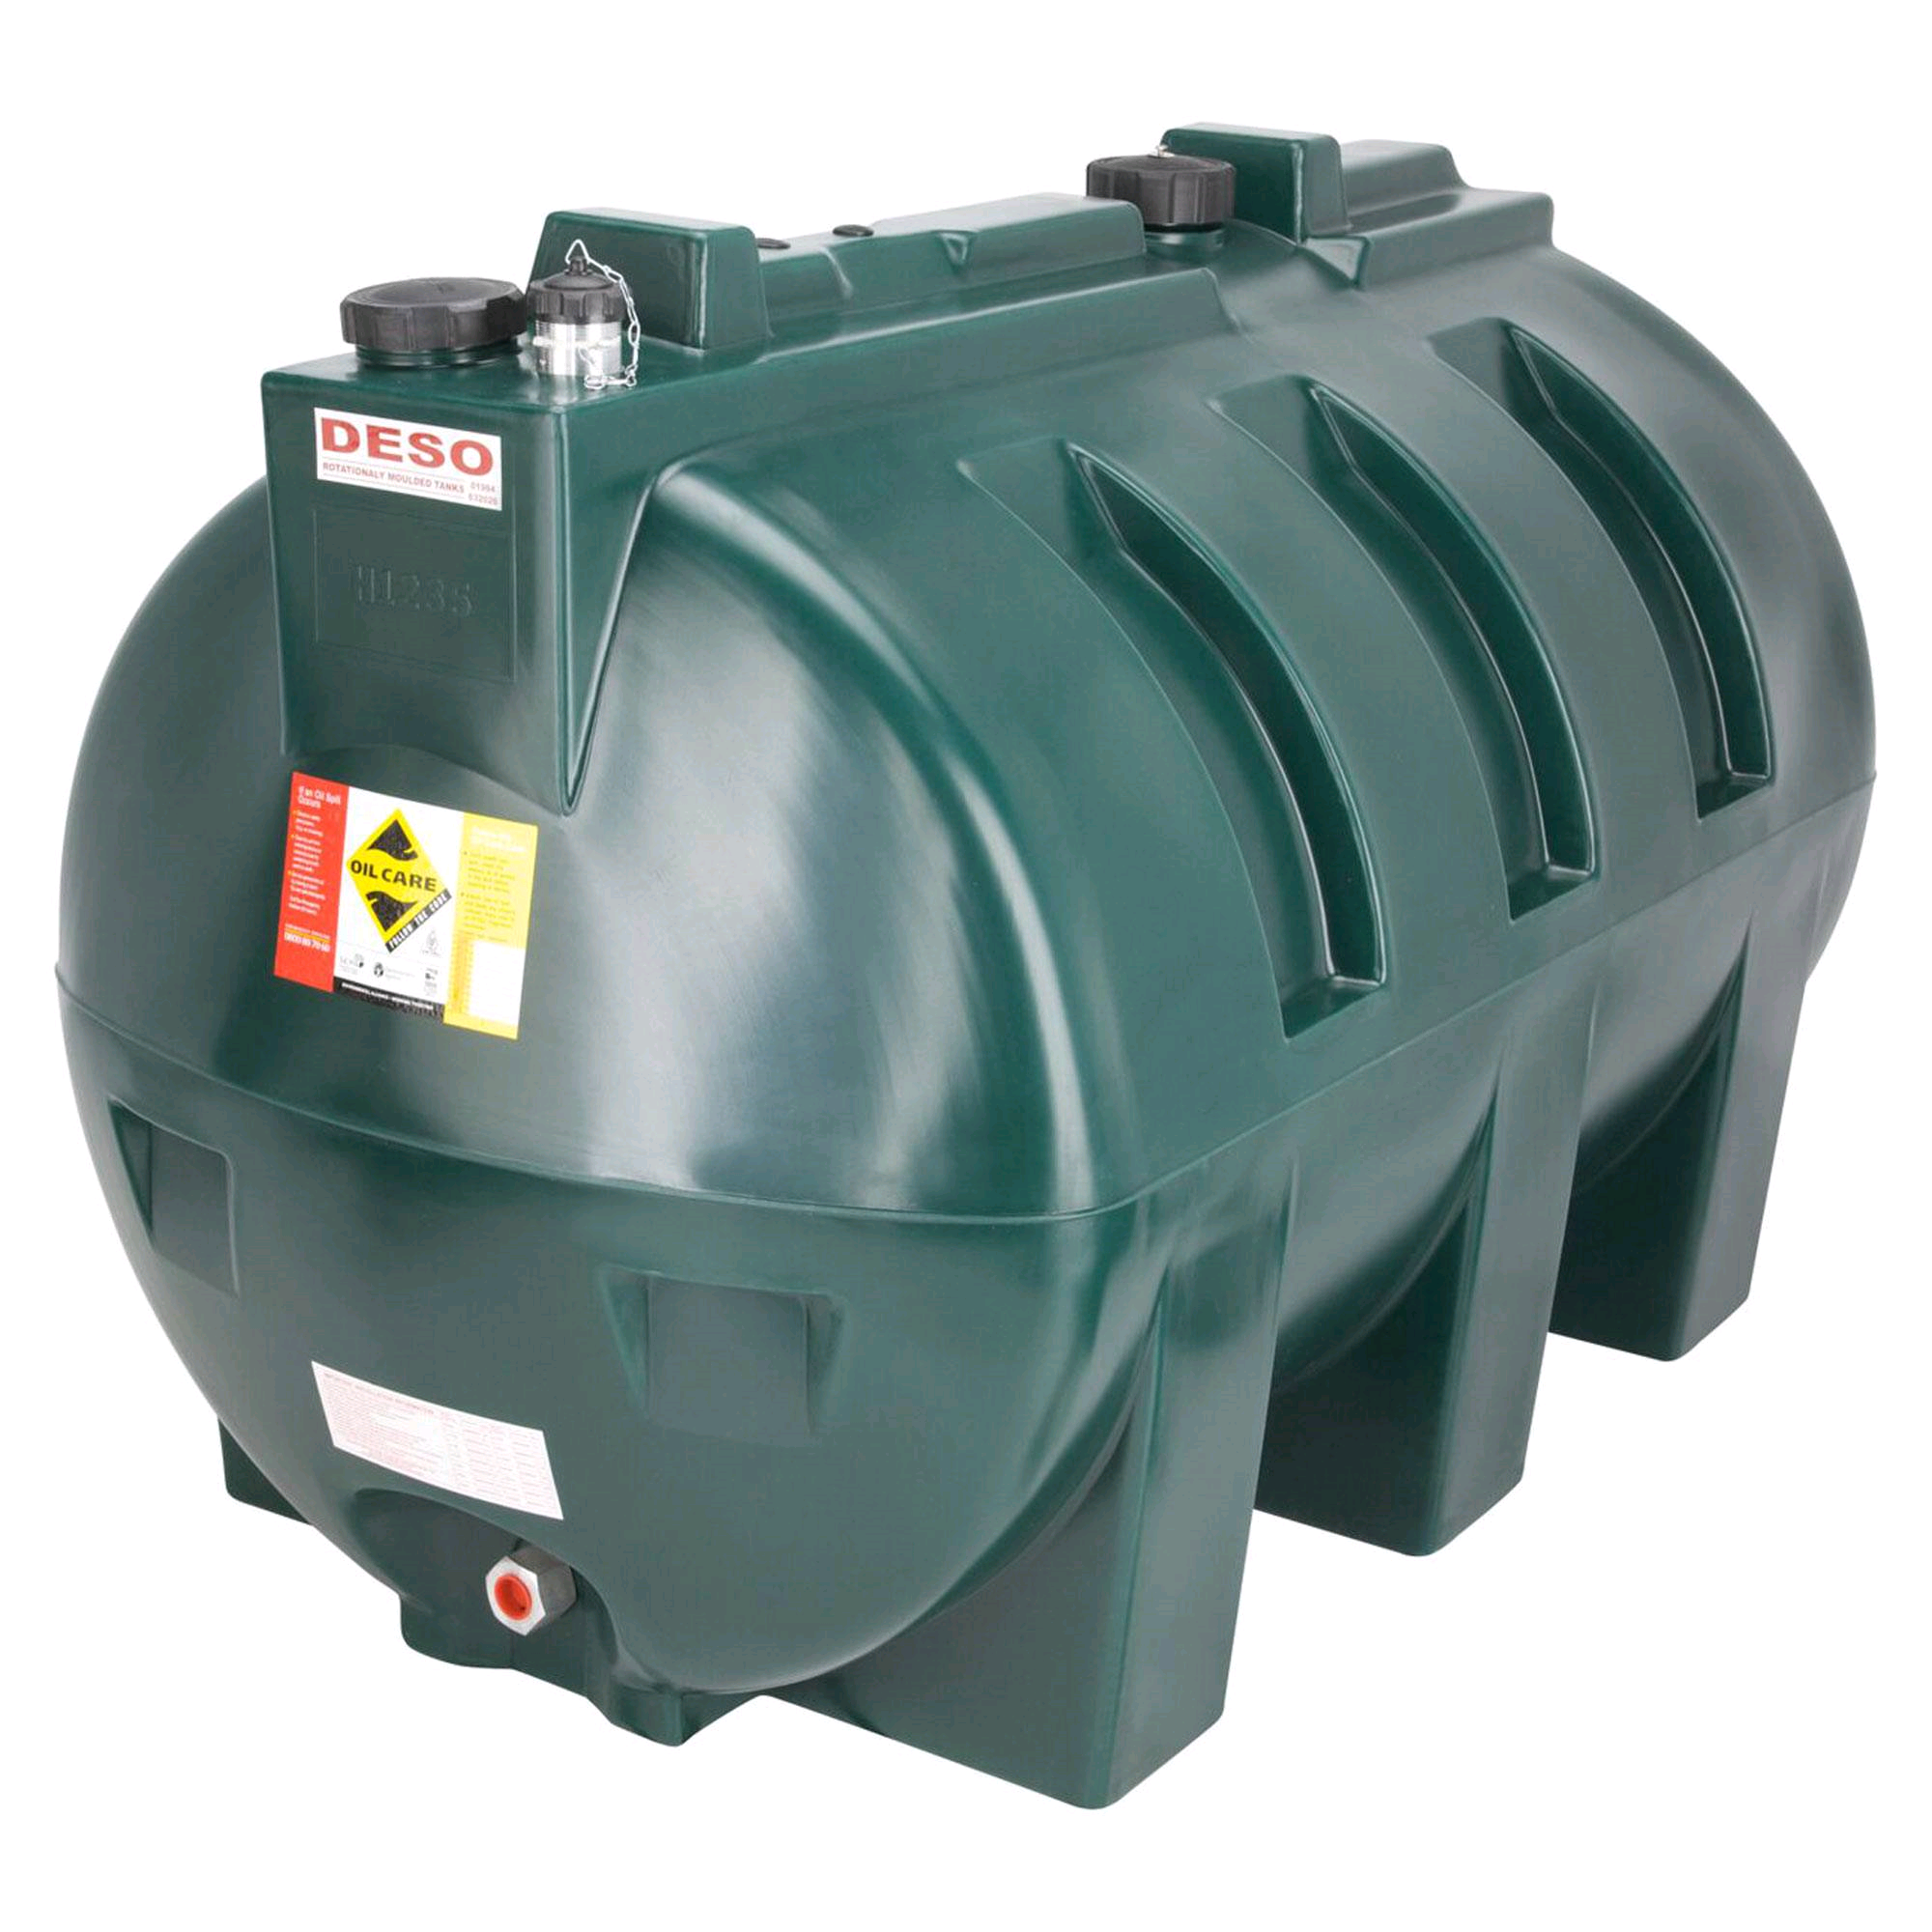 Deso 1235ltr Bunded Oil Tank (Loaf Type)